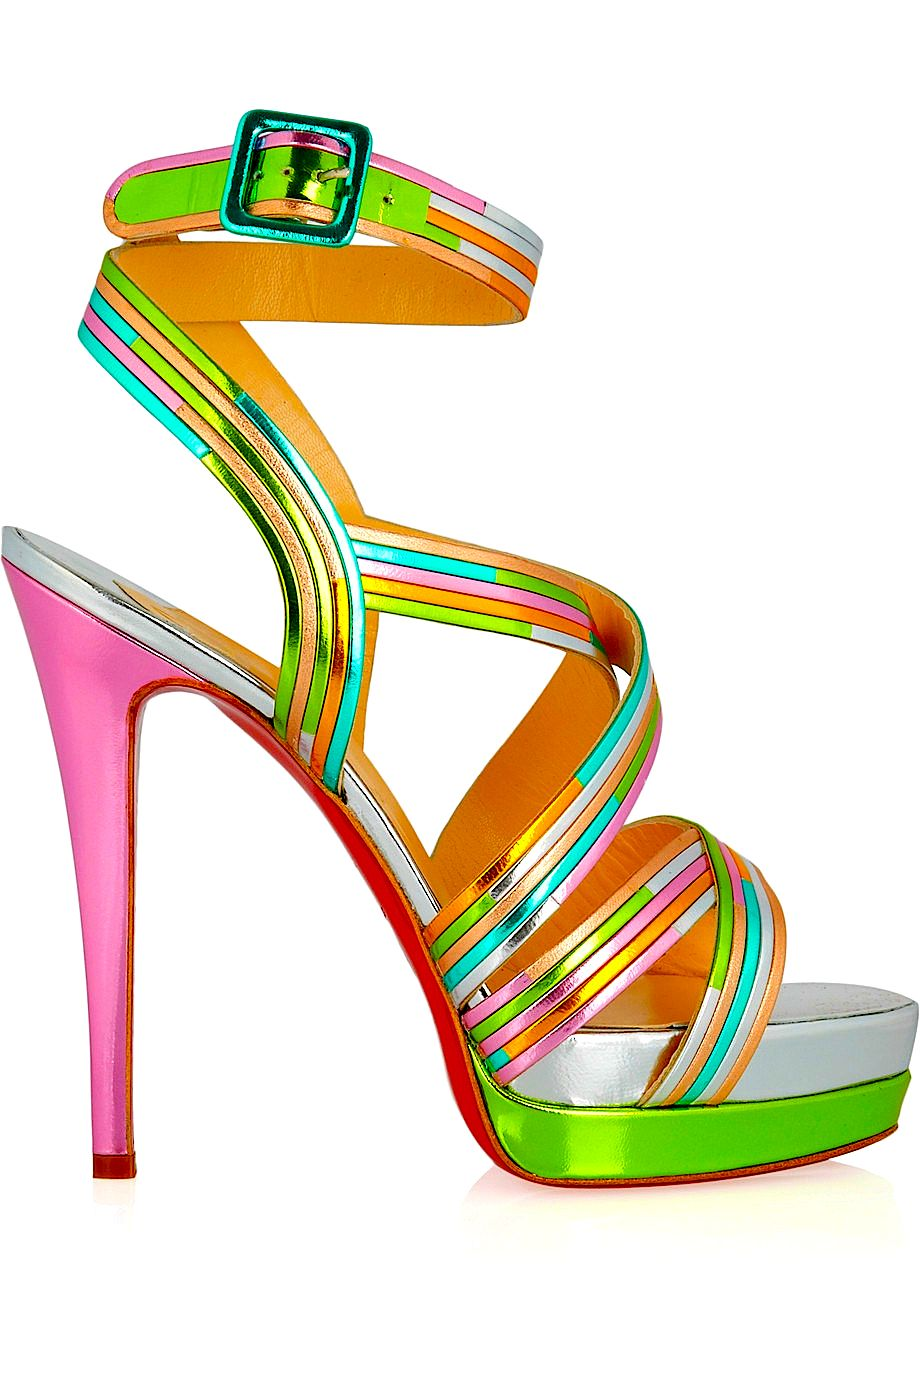 Christian Louboutin _____________________________ Reposted by Dr. Veronica Lee, DNP (Depew/Buffalo, NY, US)